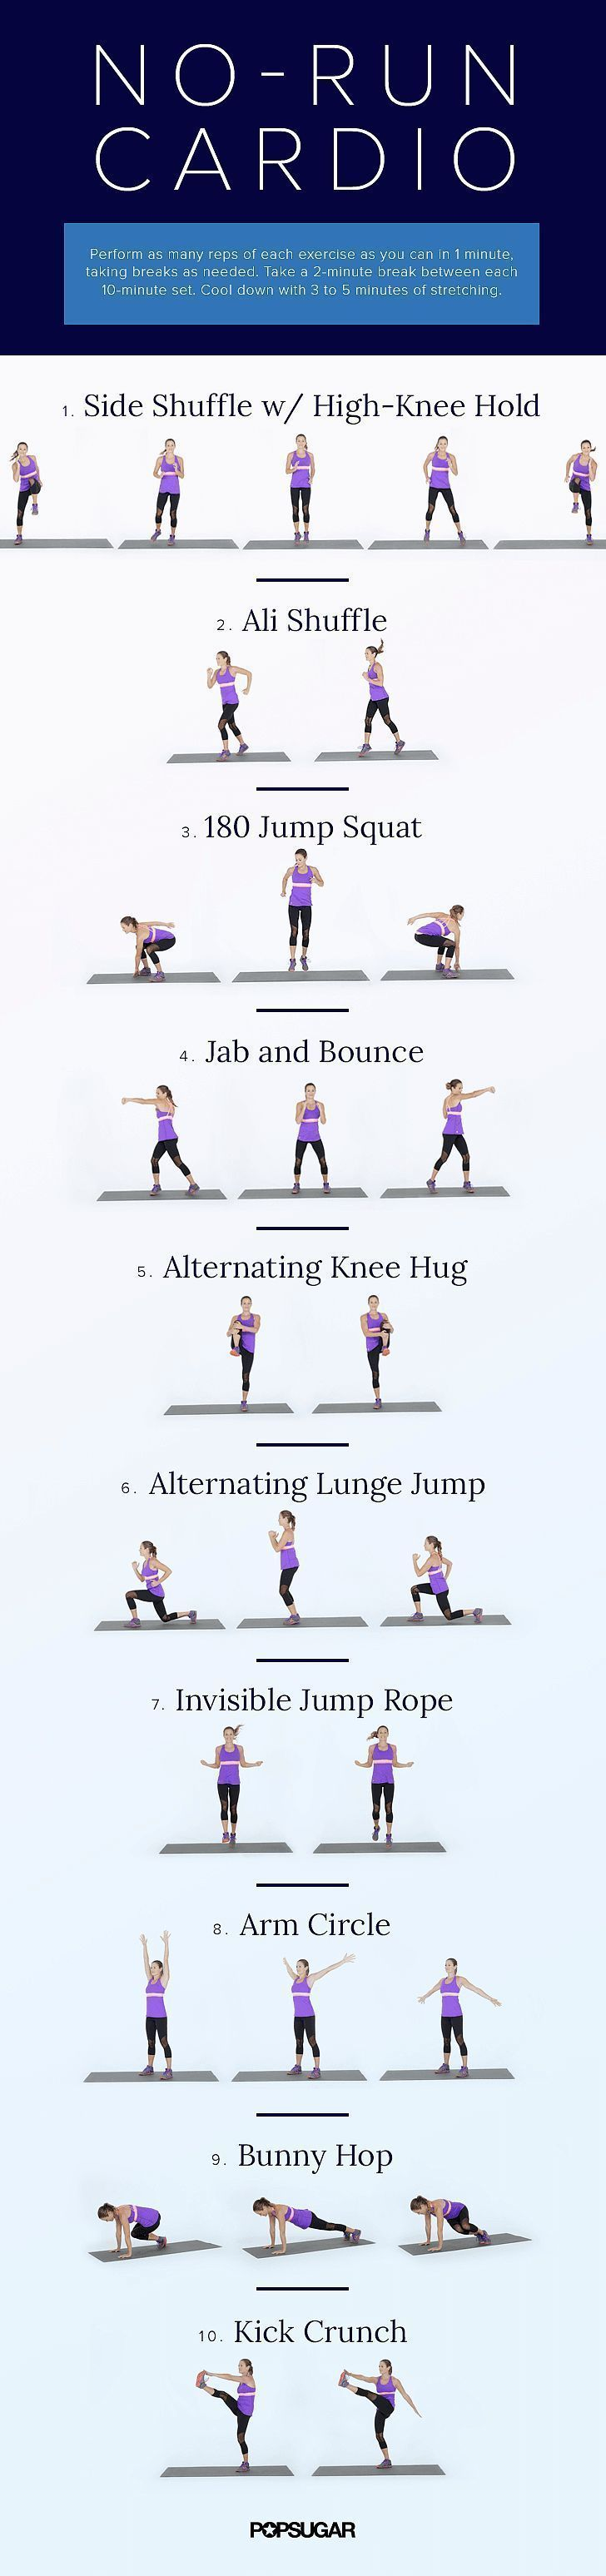 No-Run Cardio Workout. | Weight Loss | Pinterest | Discover more ...